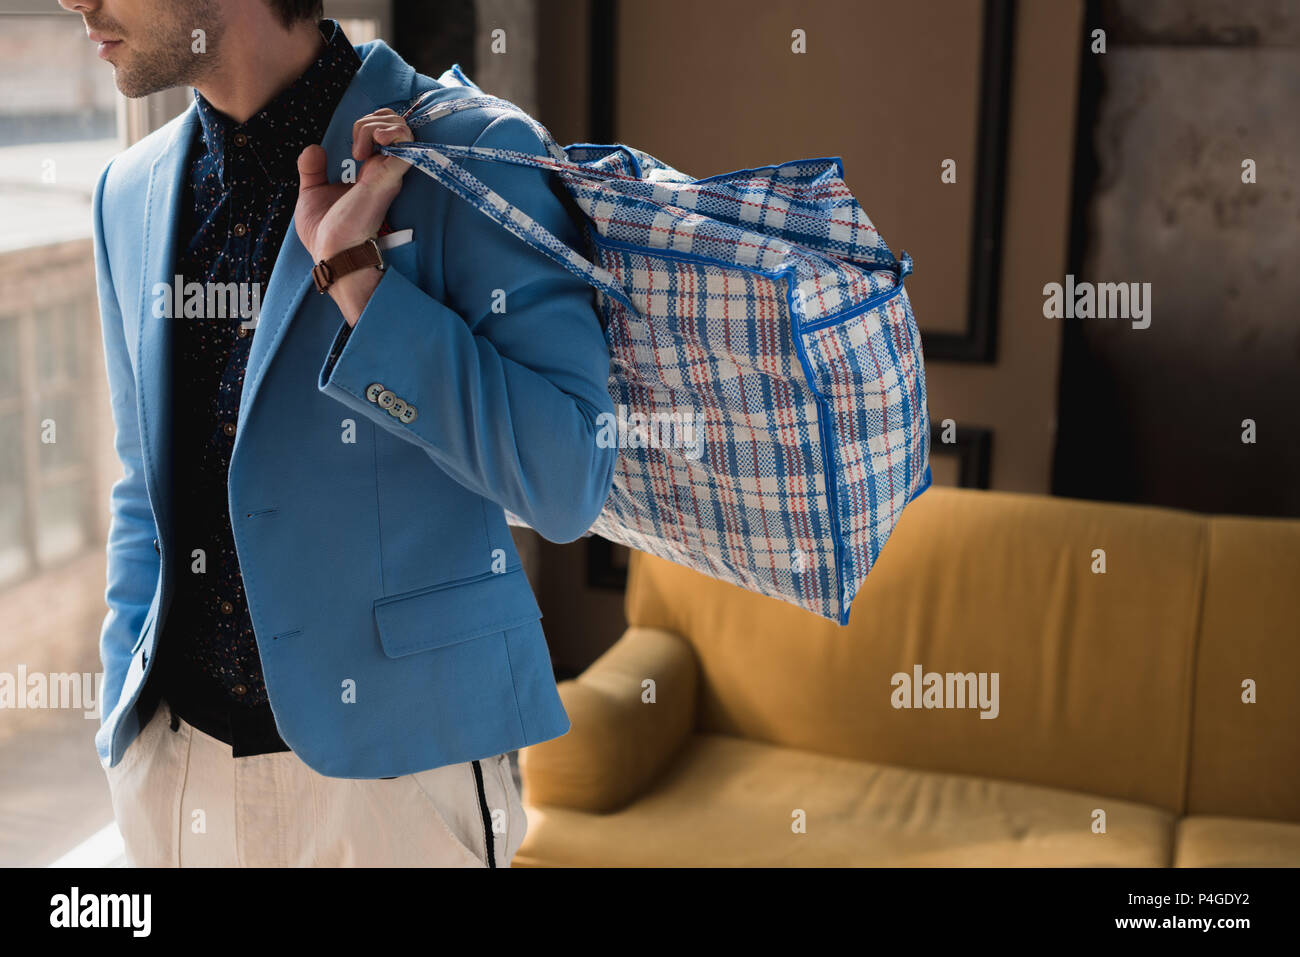 cropped shot of young man with vintage zippered duffle bag - Stock Image